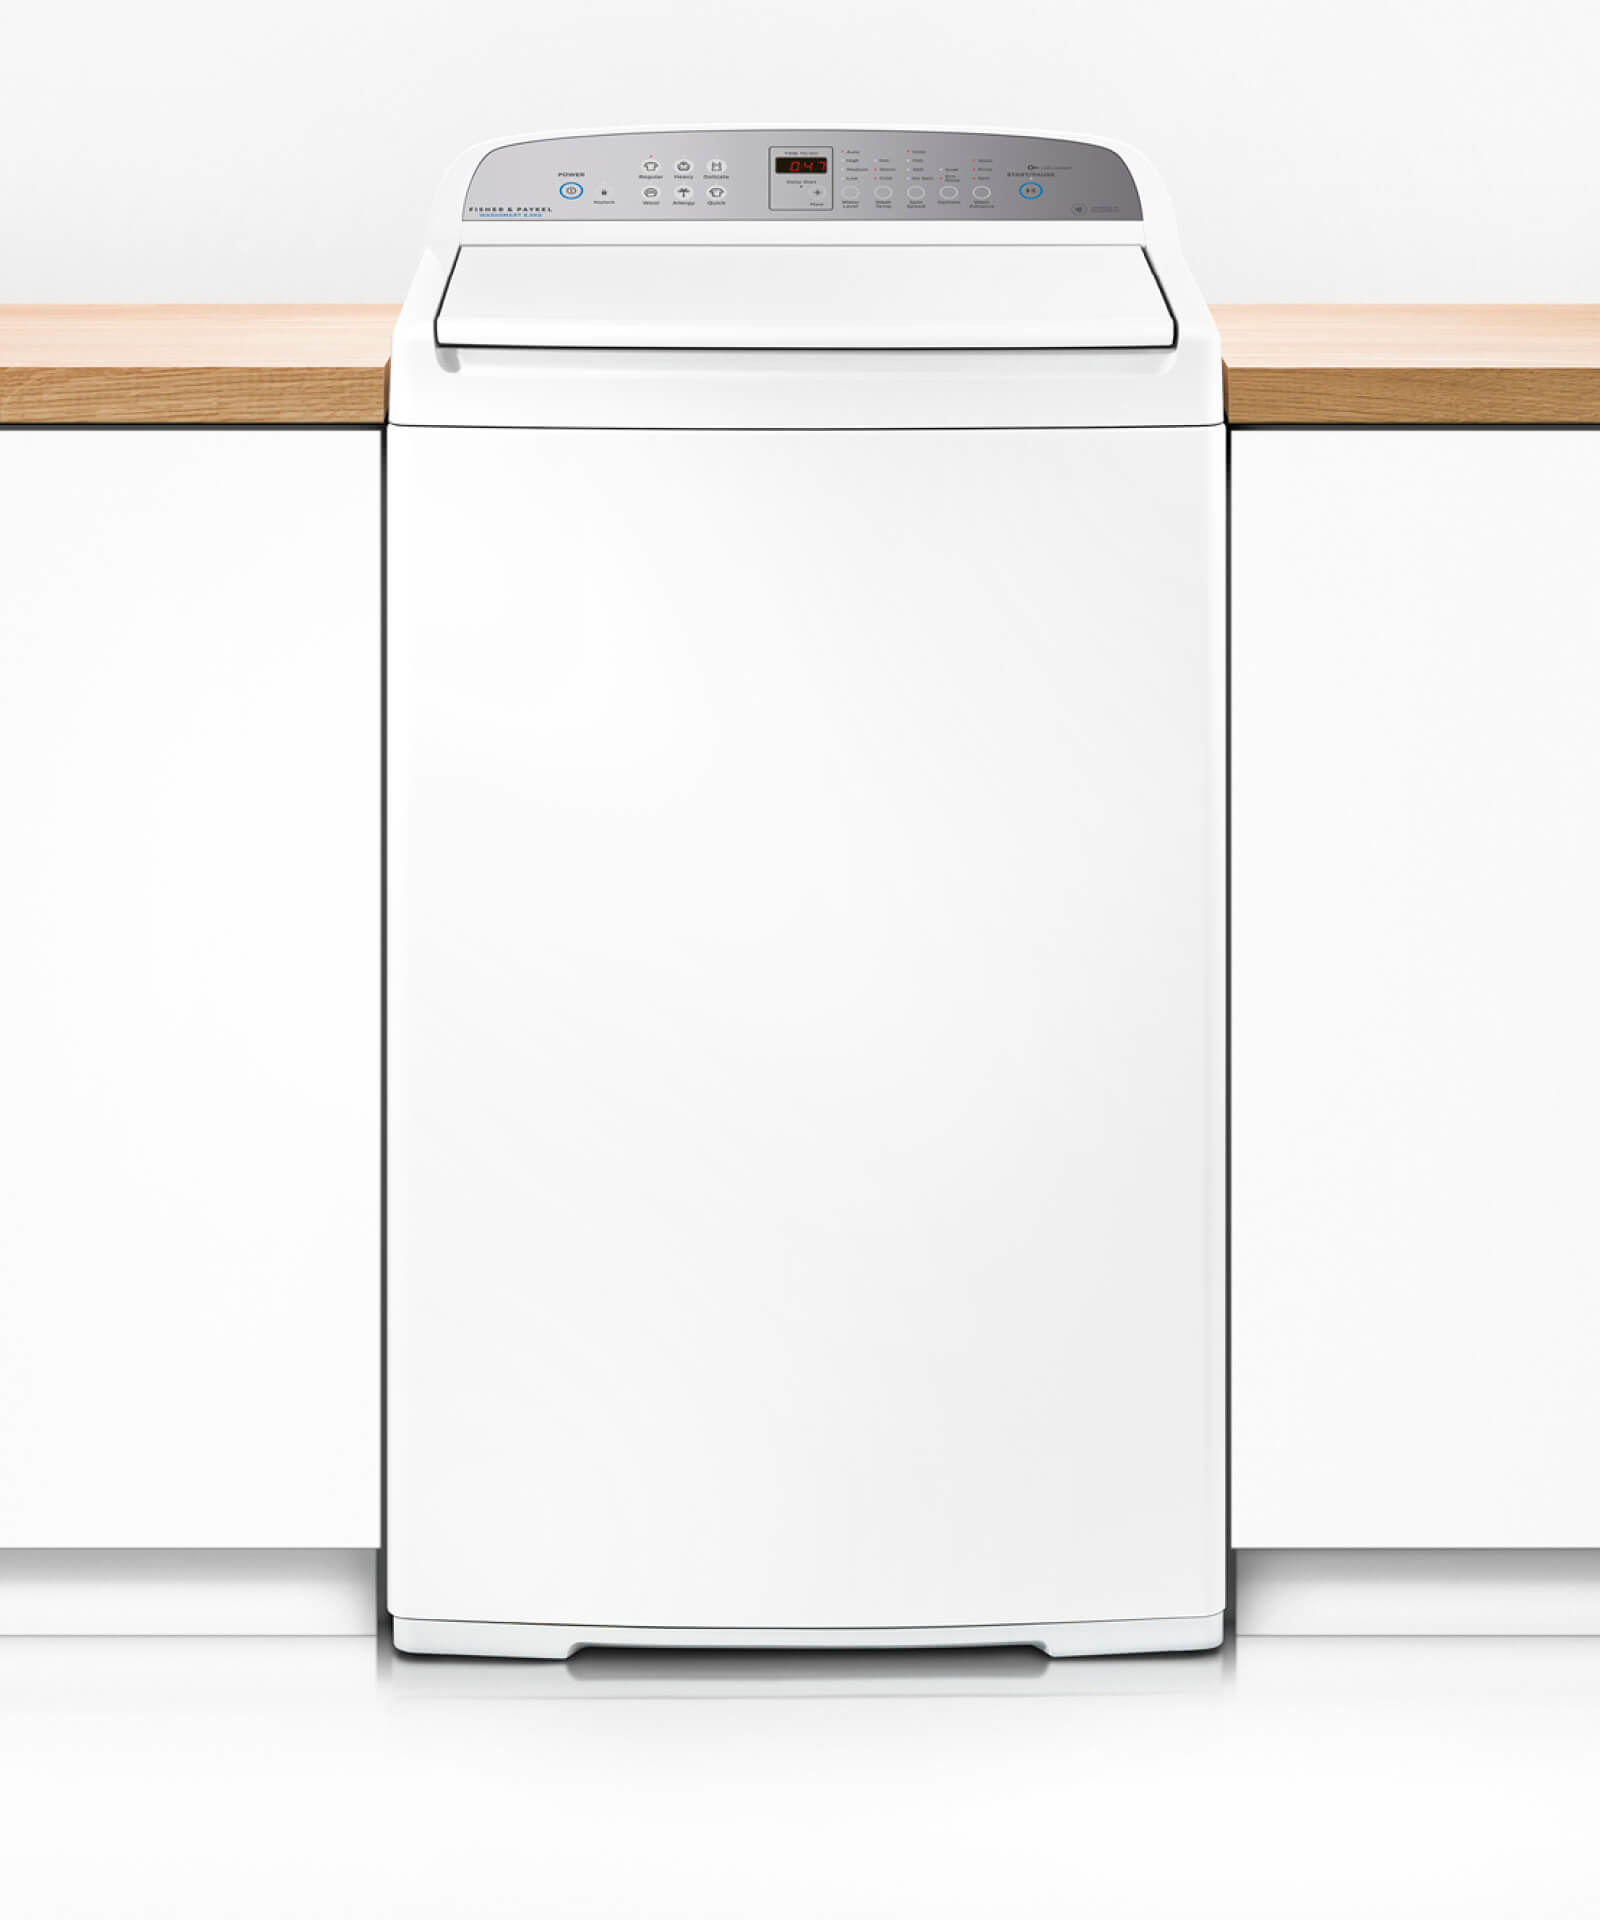 Fisher & Paykel TopLoad Washer 8.5Kg 1000Rpm 2.5 Star Energy 3.5 Star Wels 6 Wash (Factory Second)